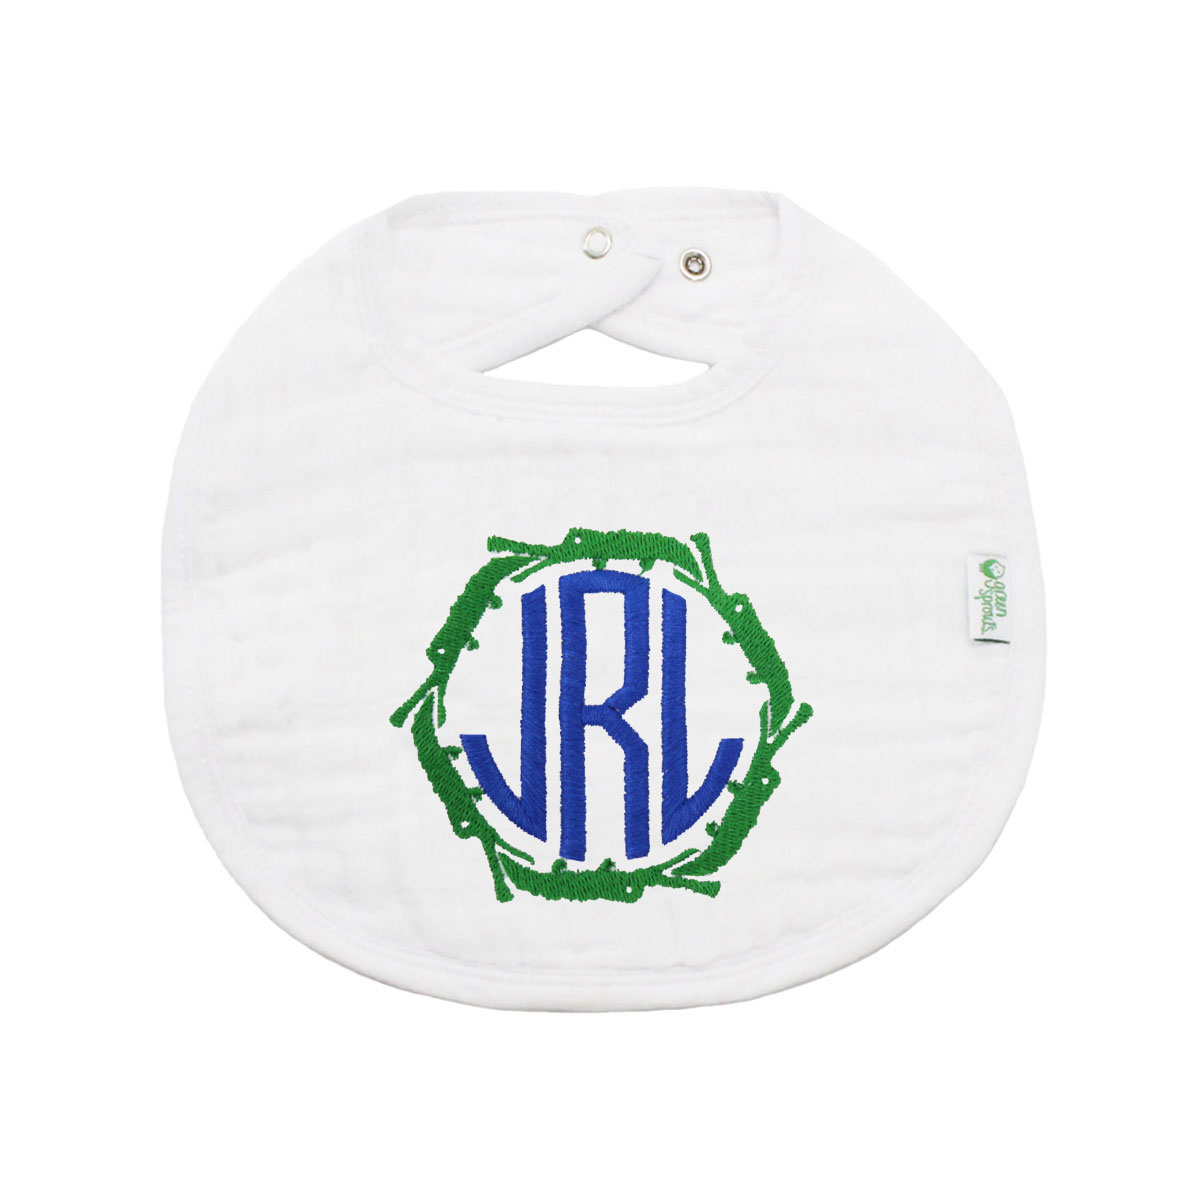 The Tot Organic Cotton White Bib with Personalized Monogram in Alligator